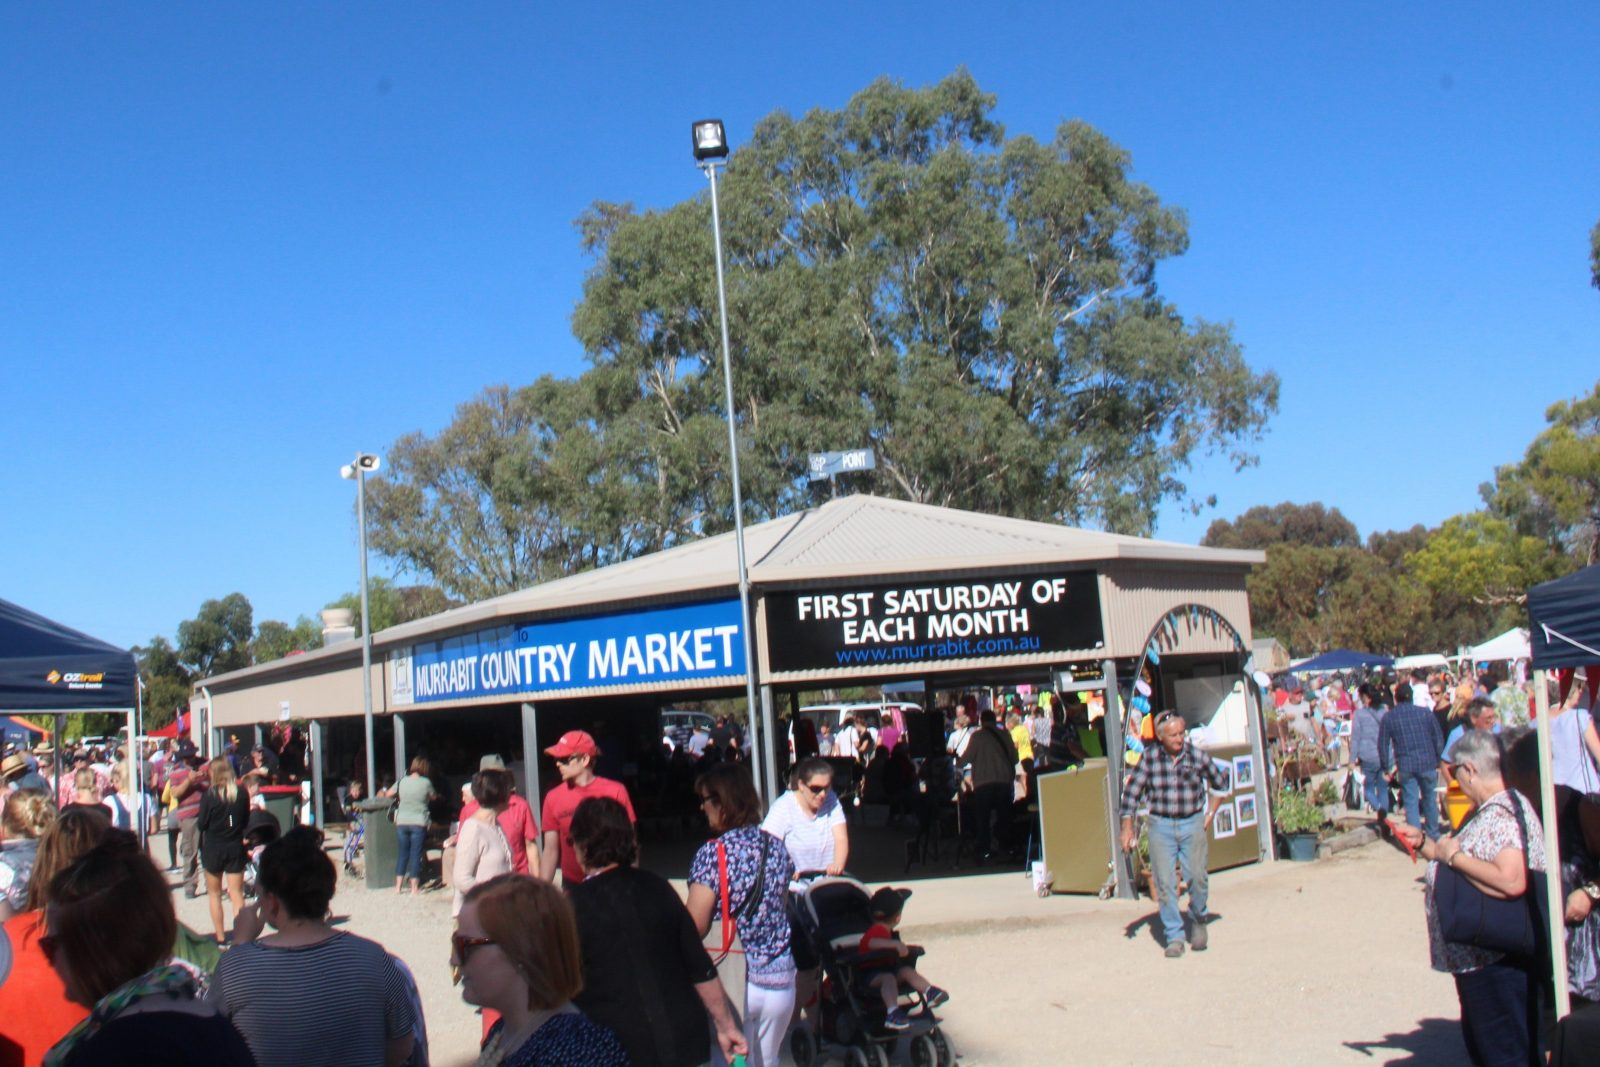 Murrabit Country Market Broadcast and Information Area